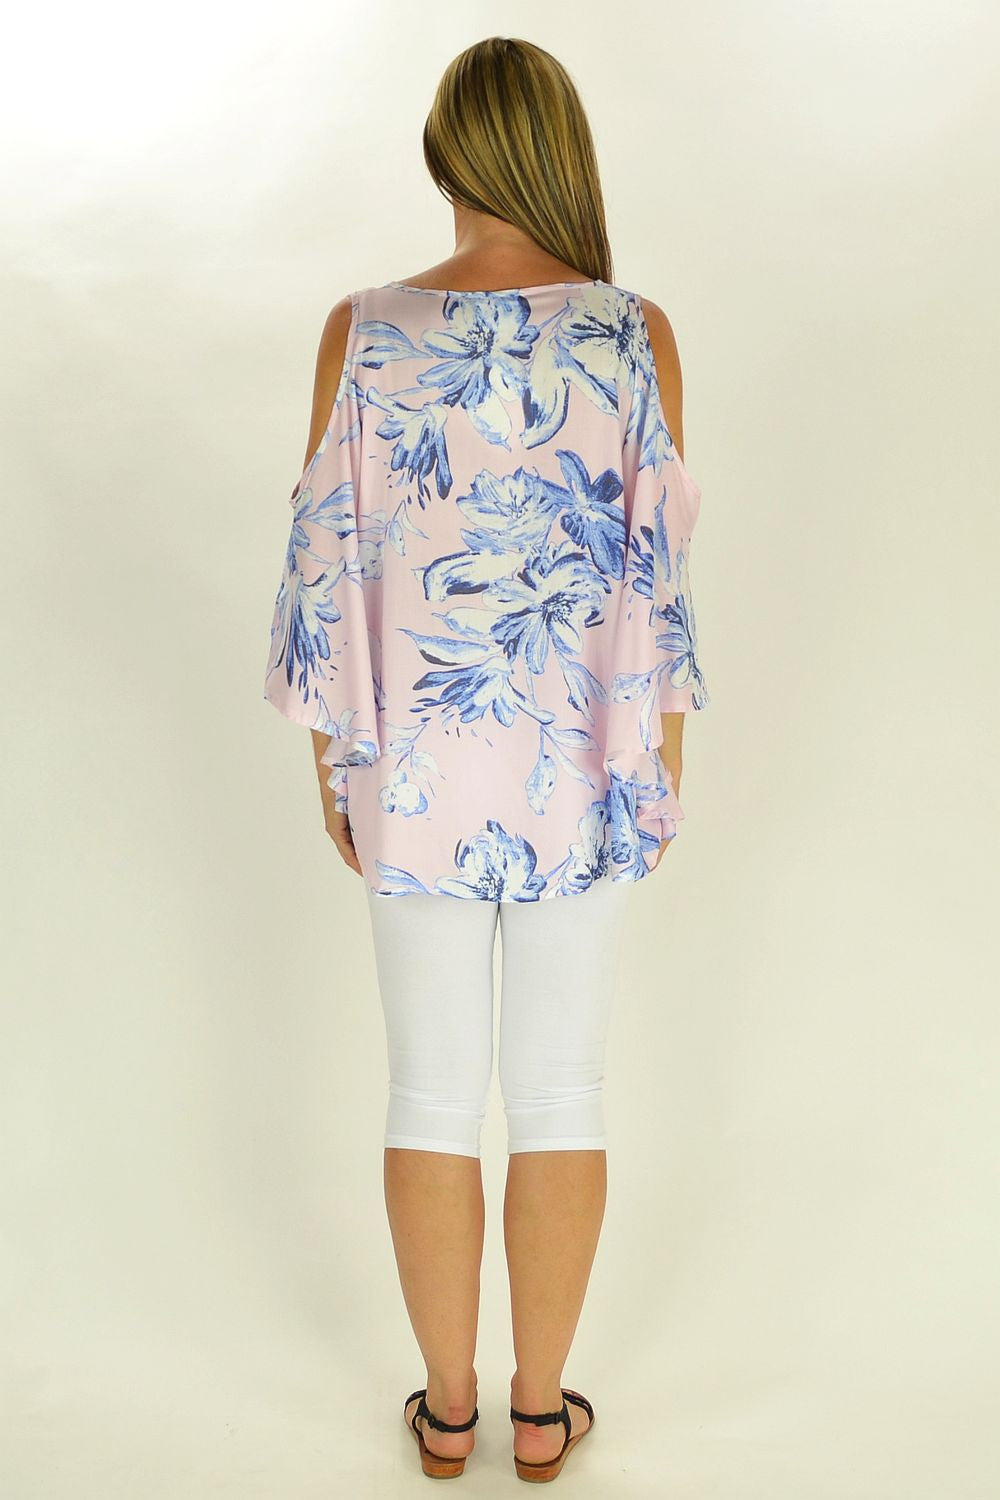 Soft Pink Victoria Tunic - at I Love Tunics @ www.ilovetunics.com = Number One! Tunics Destination